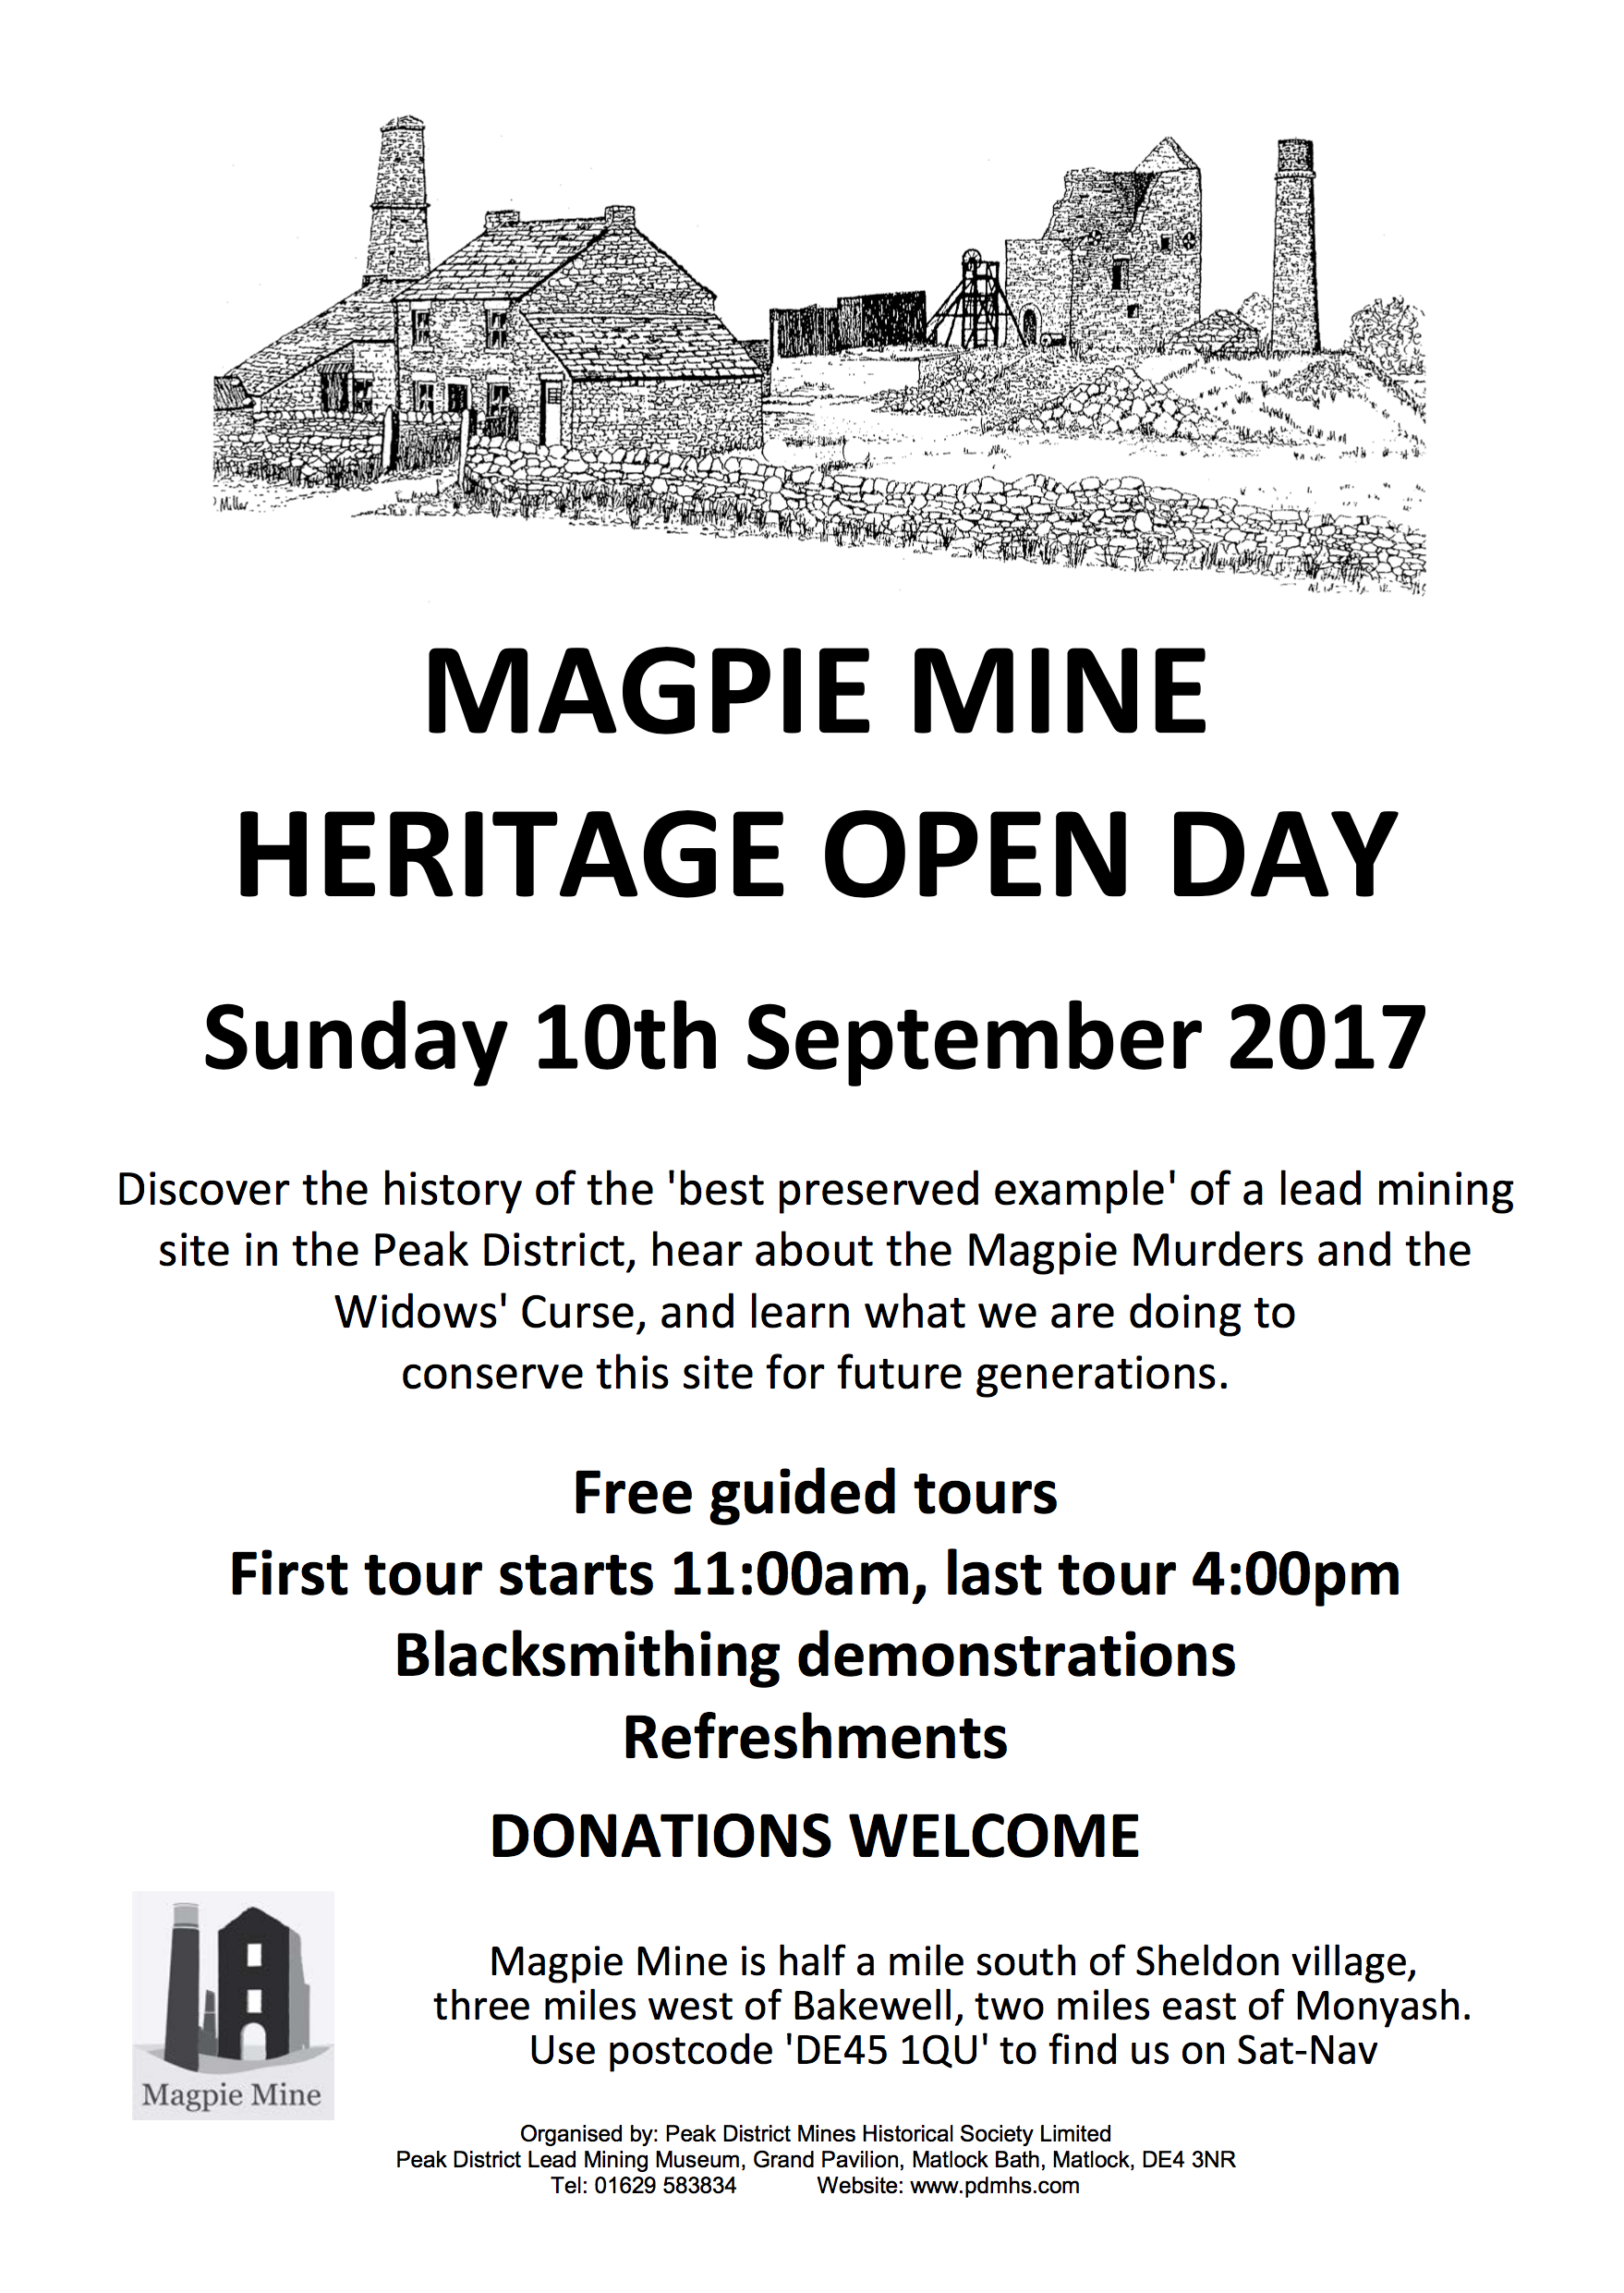 Magpie Mine Heritage Open Day 2017